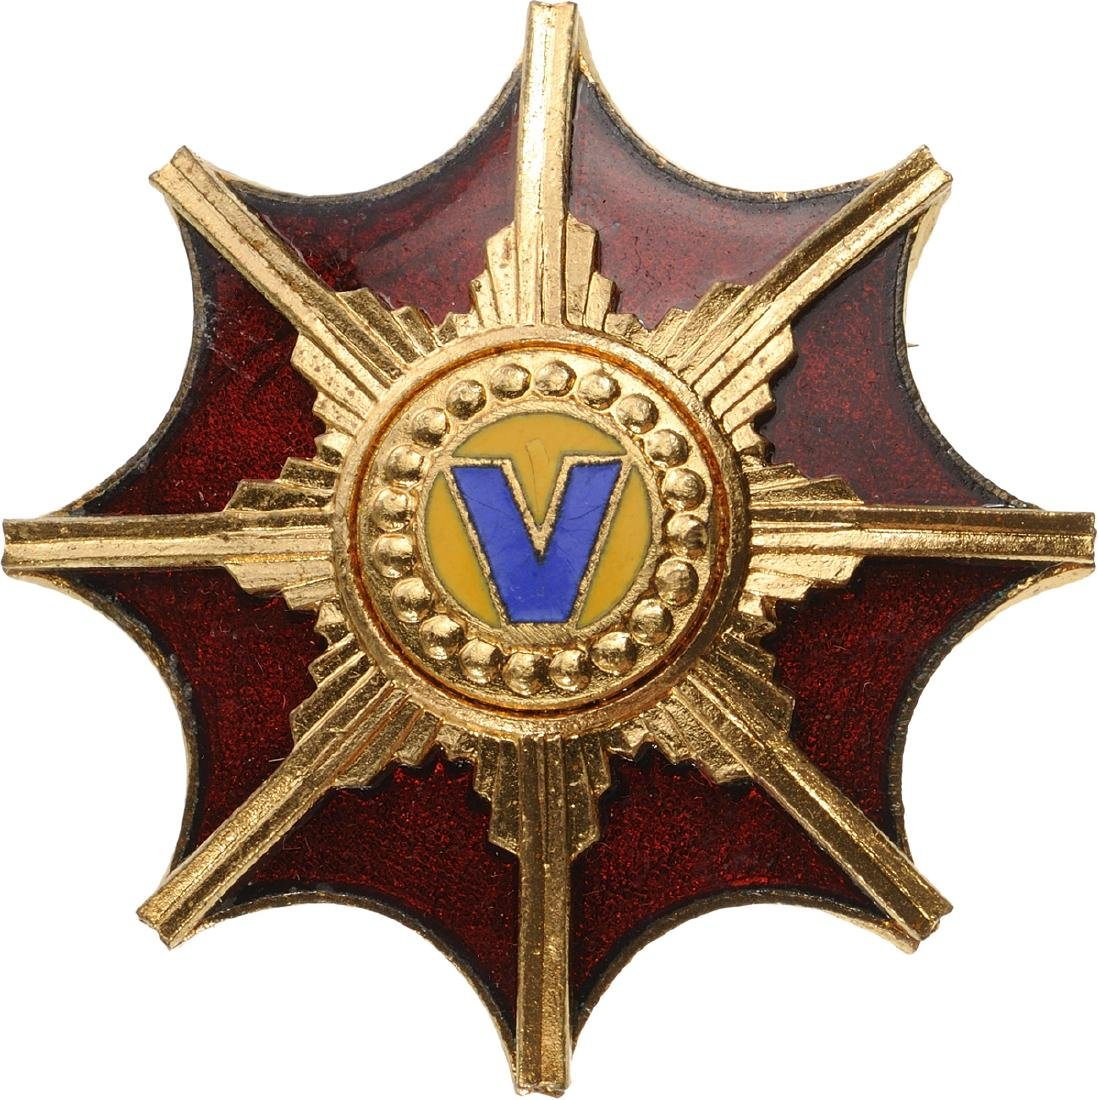 REPUBLIC - ORDER OF THE VICTORY OF THE ROMANIAN